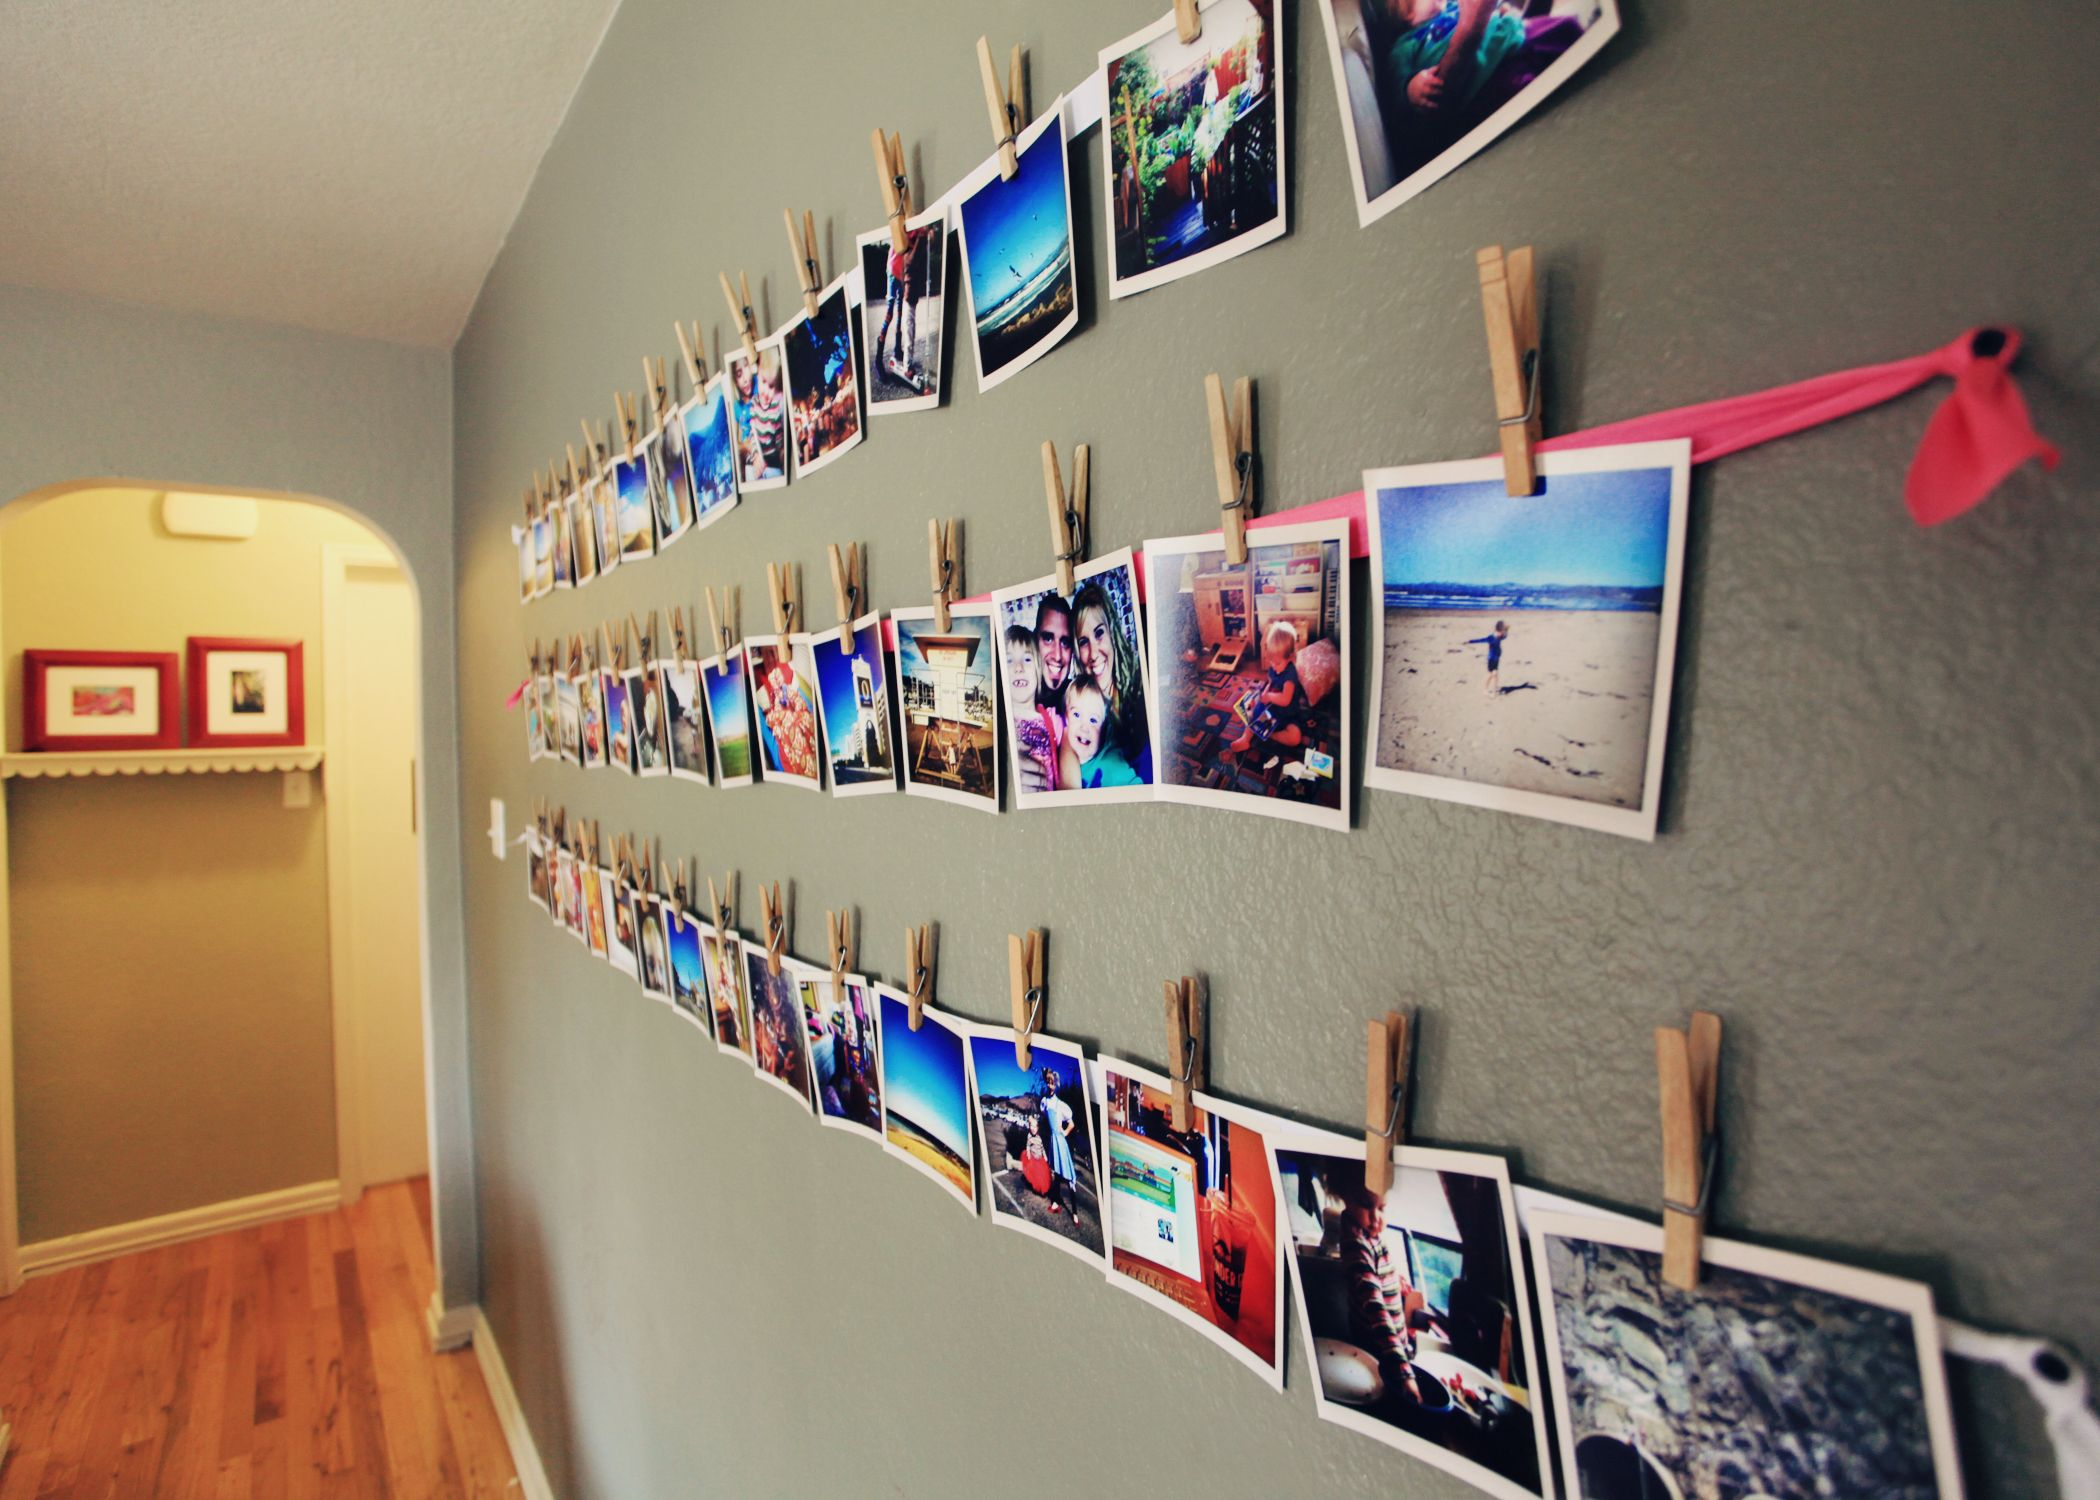 Picture Wall For Narrow Hallway By Carole Camera Printer That Docks Photo Paper Ribbon And Clips This Idea